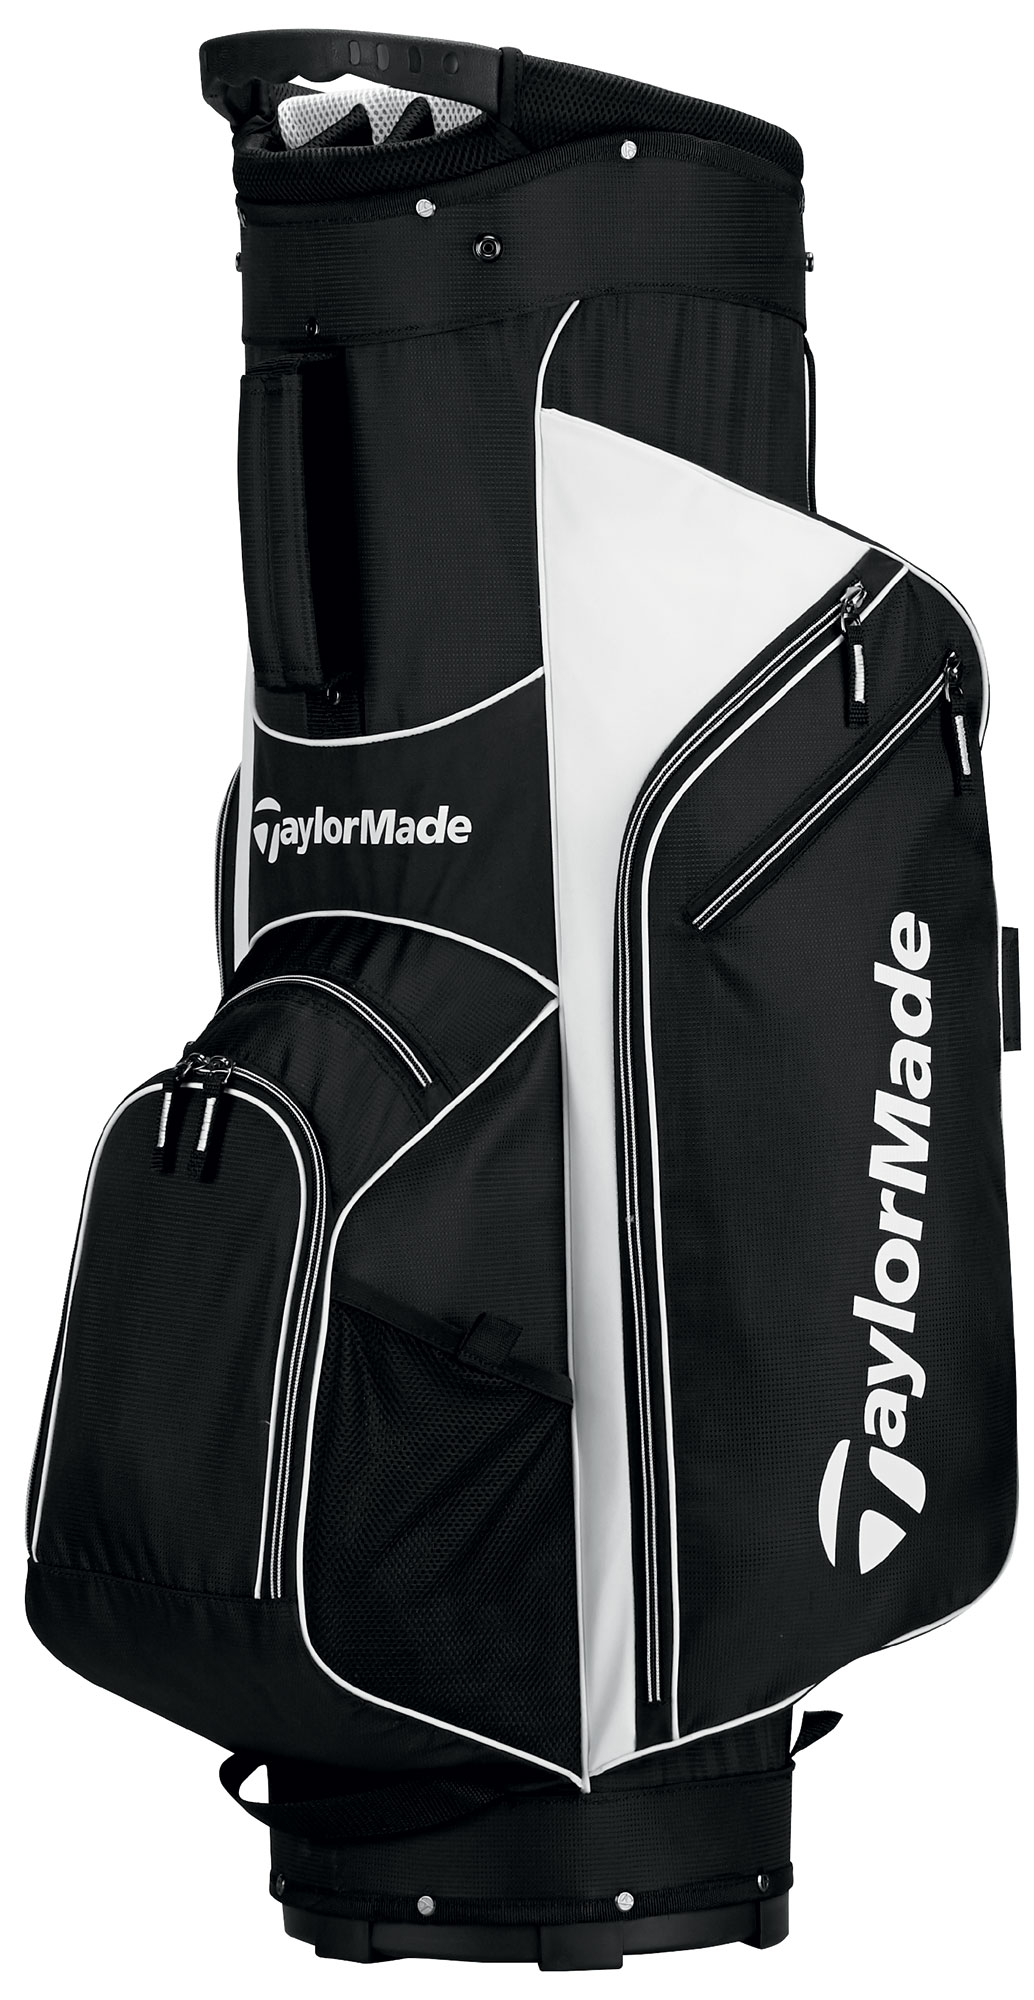 Taylormade Tm 5 0 Golf Cart Bag New Choose Color Ebay